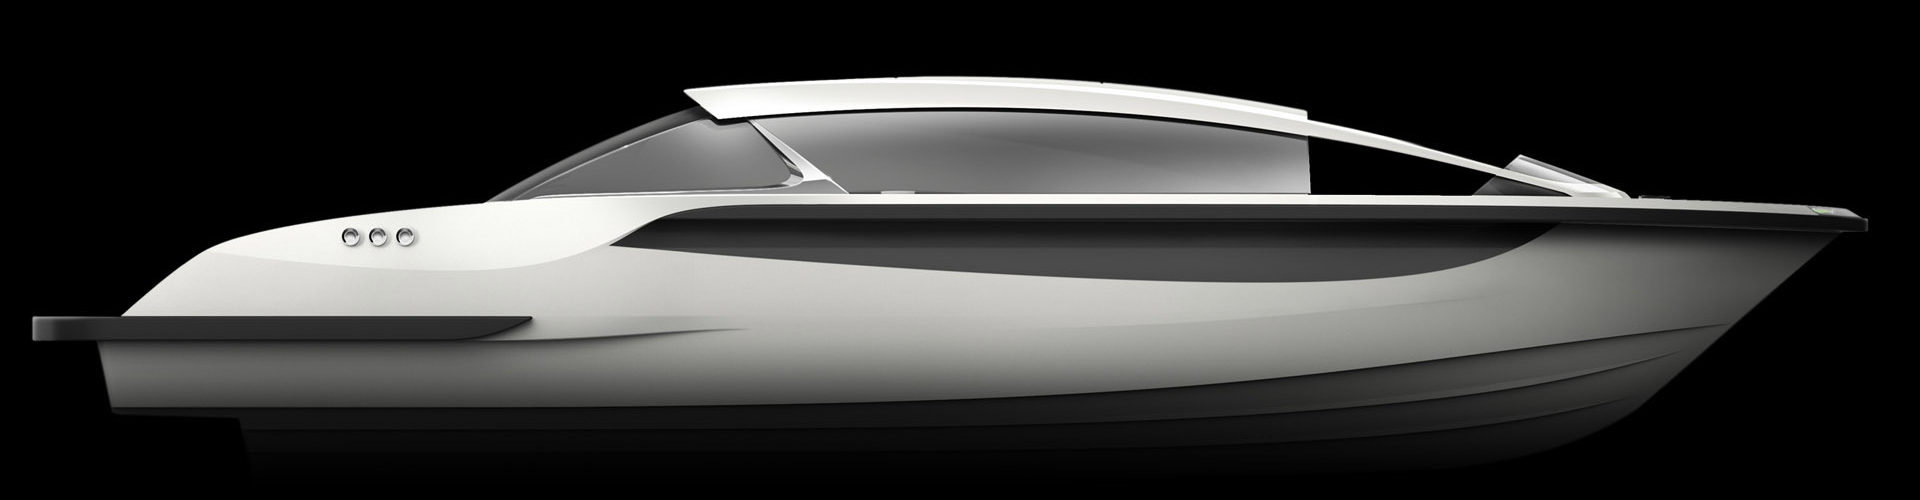 Profile of Luxurious limousine superyacht tender boat by Hamid Bekradi